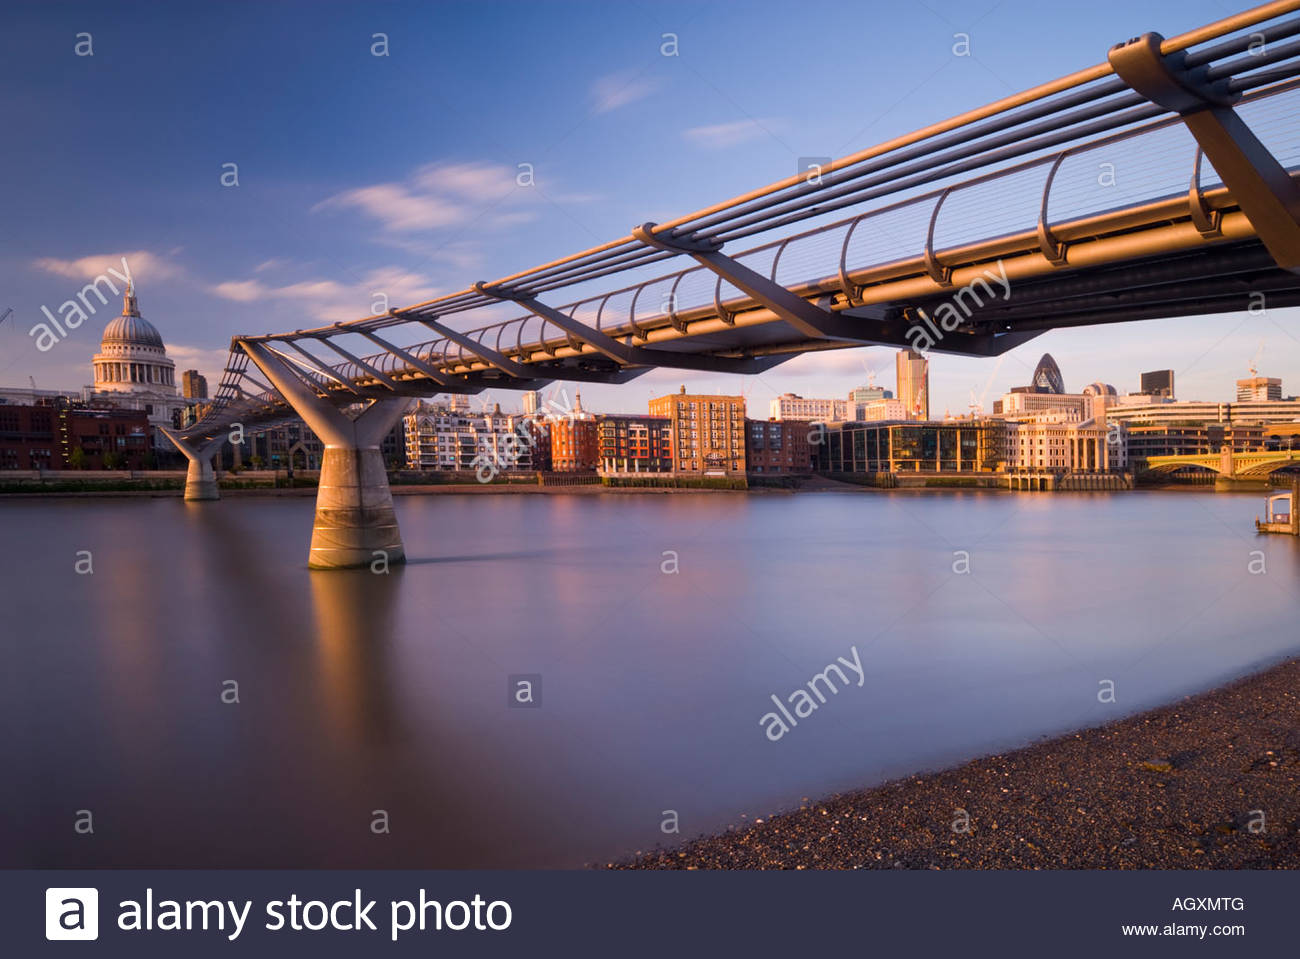 St. Paul's Cathedral and the Millennium bridge over the river Thames, London, England. - Stock Image